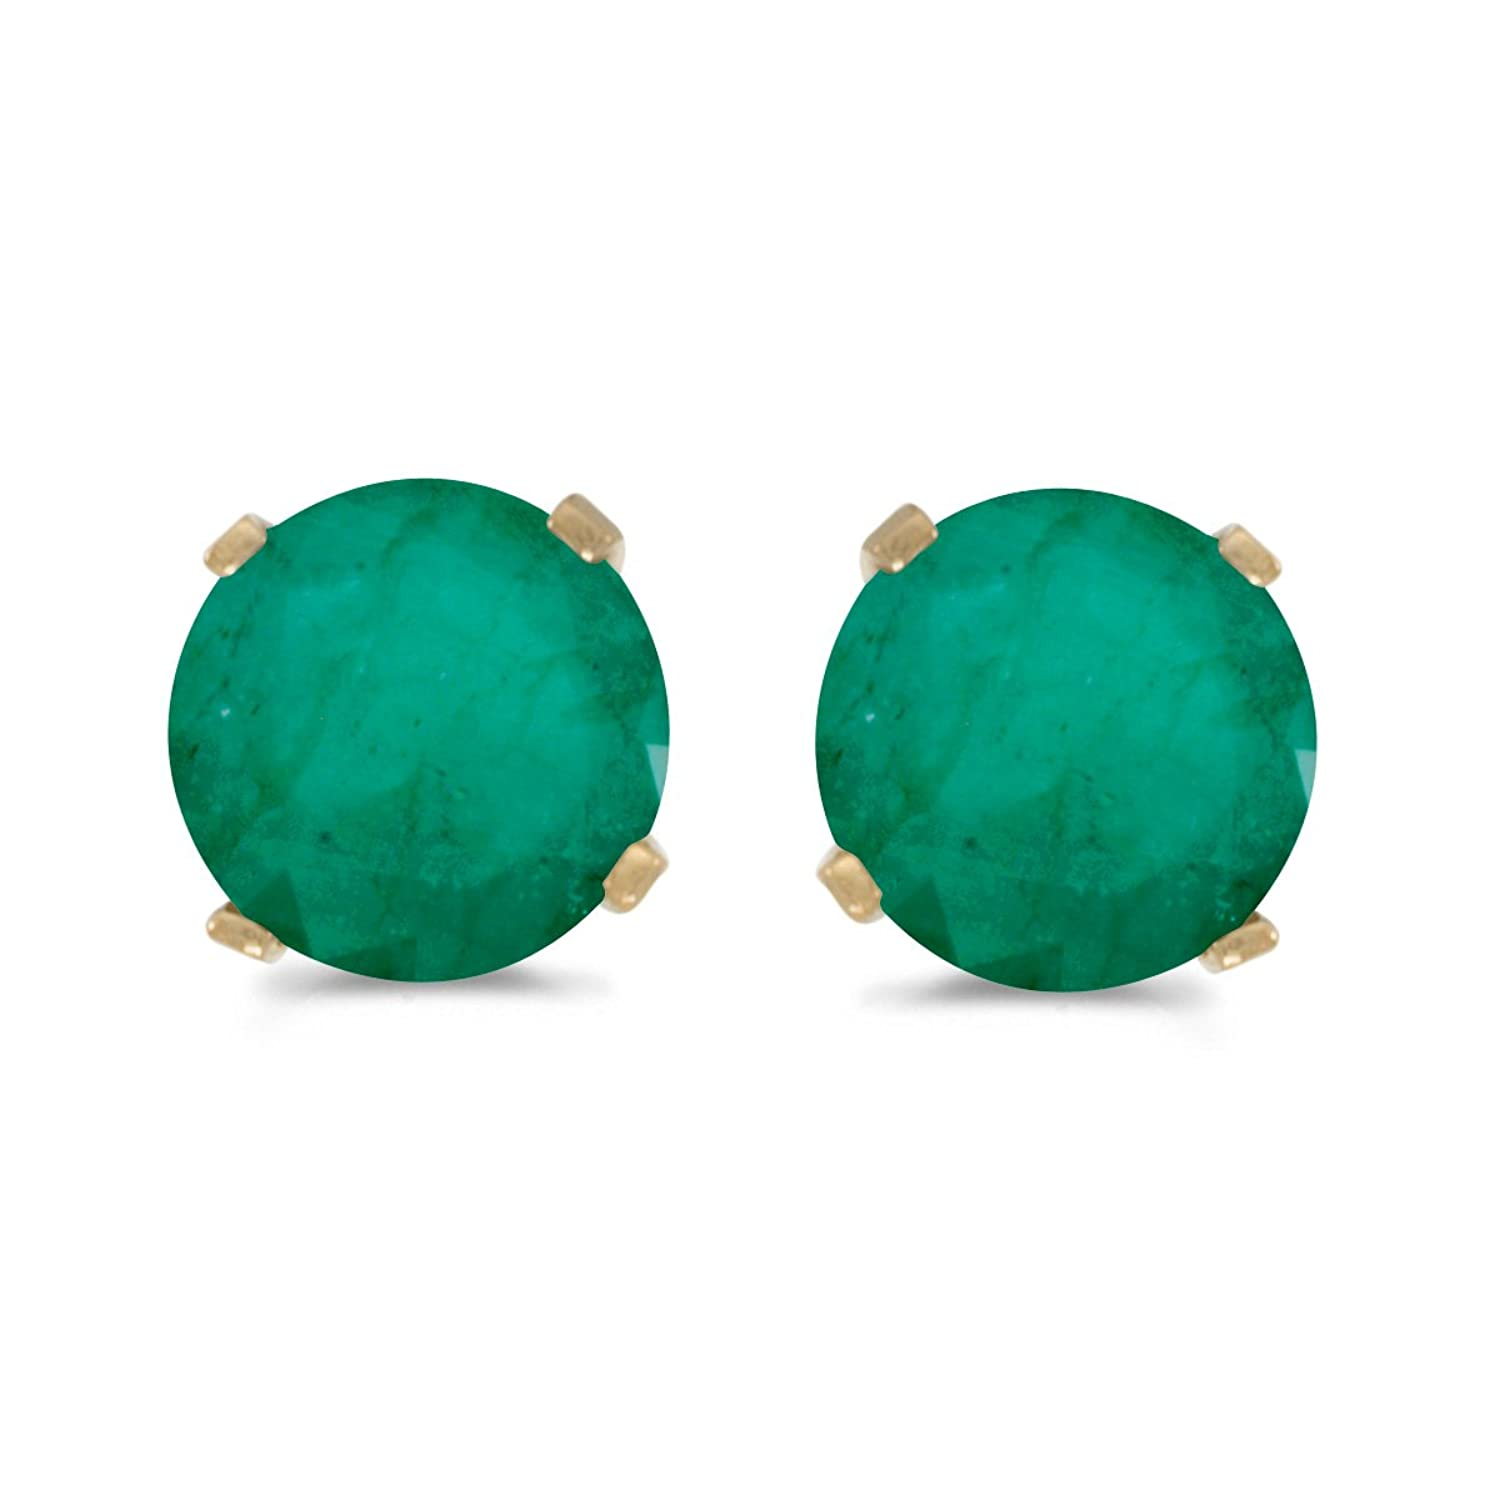 gemstones earrings diamond jewelry colored natural mine unenhanced and estate old emerald image